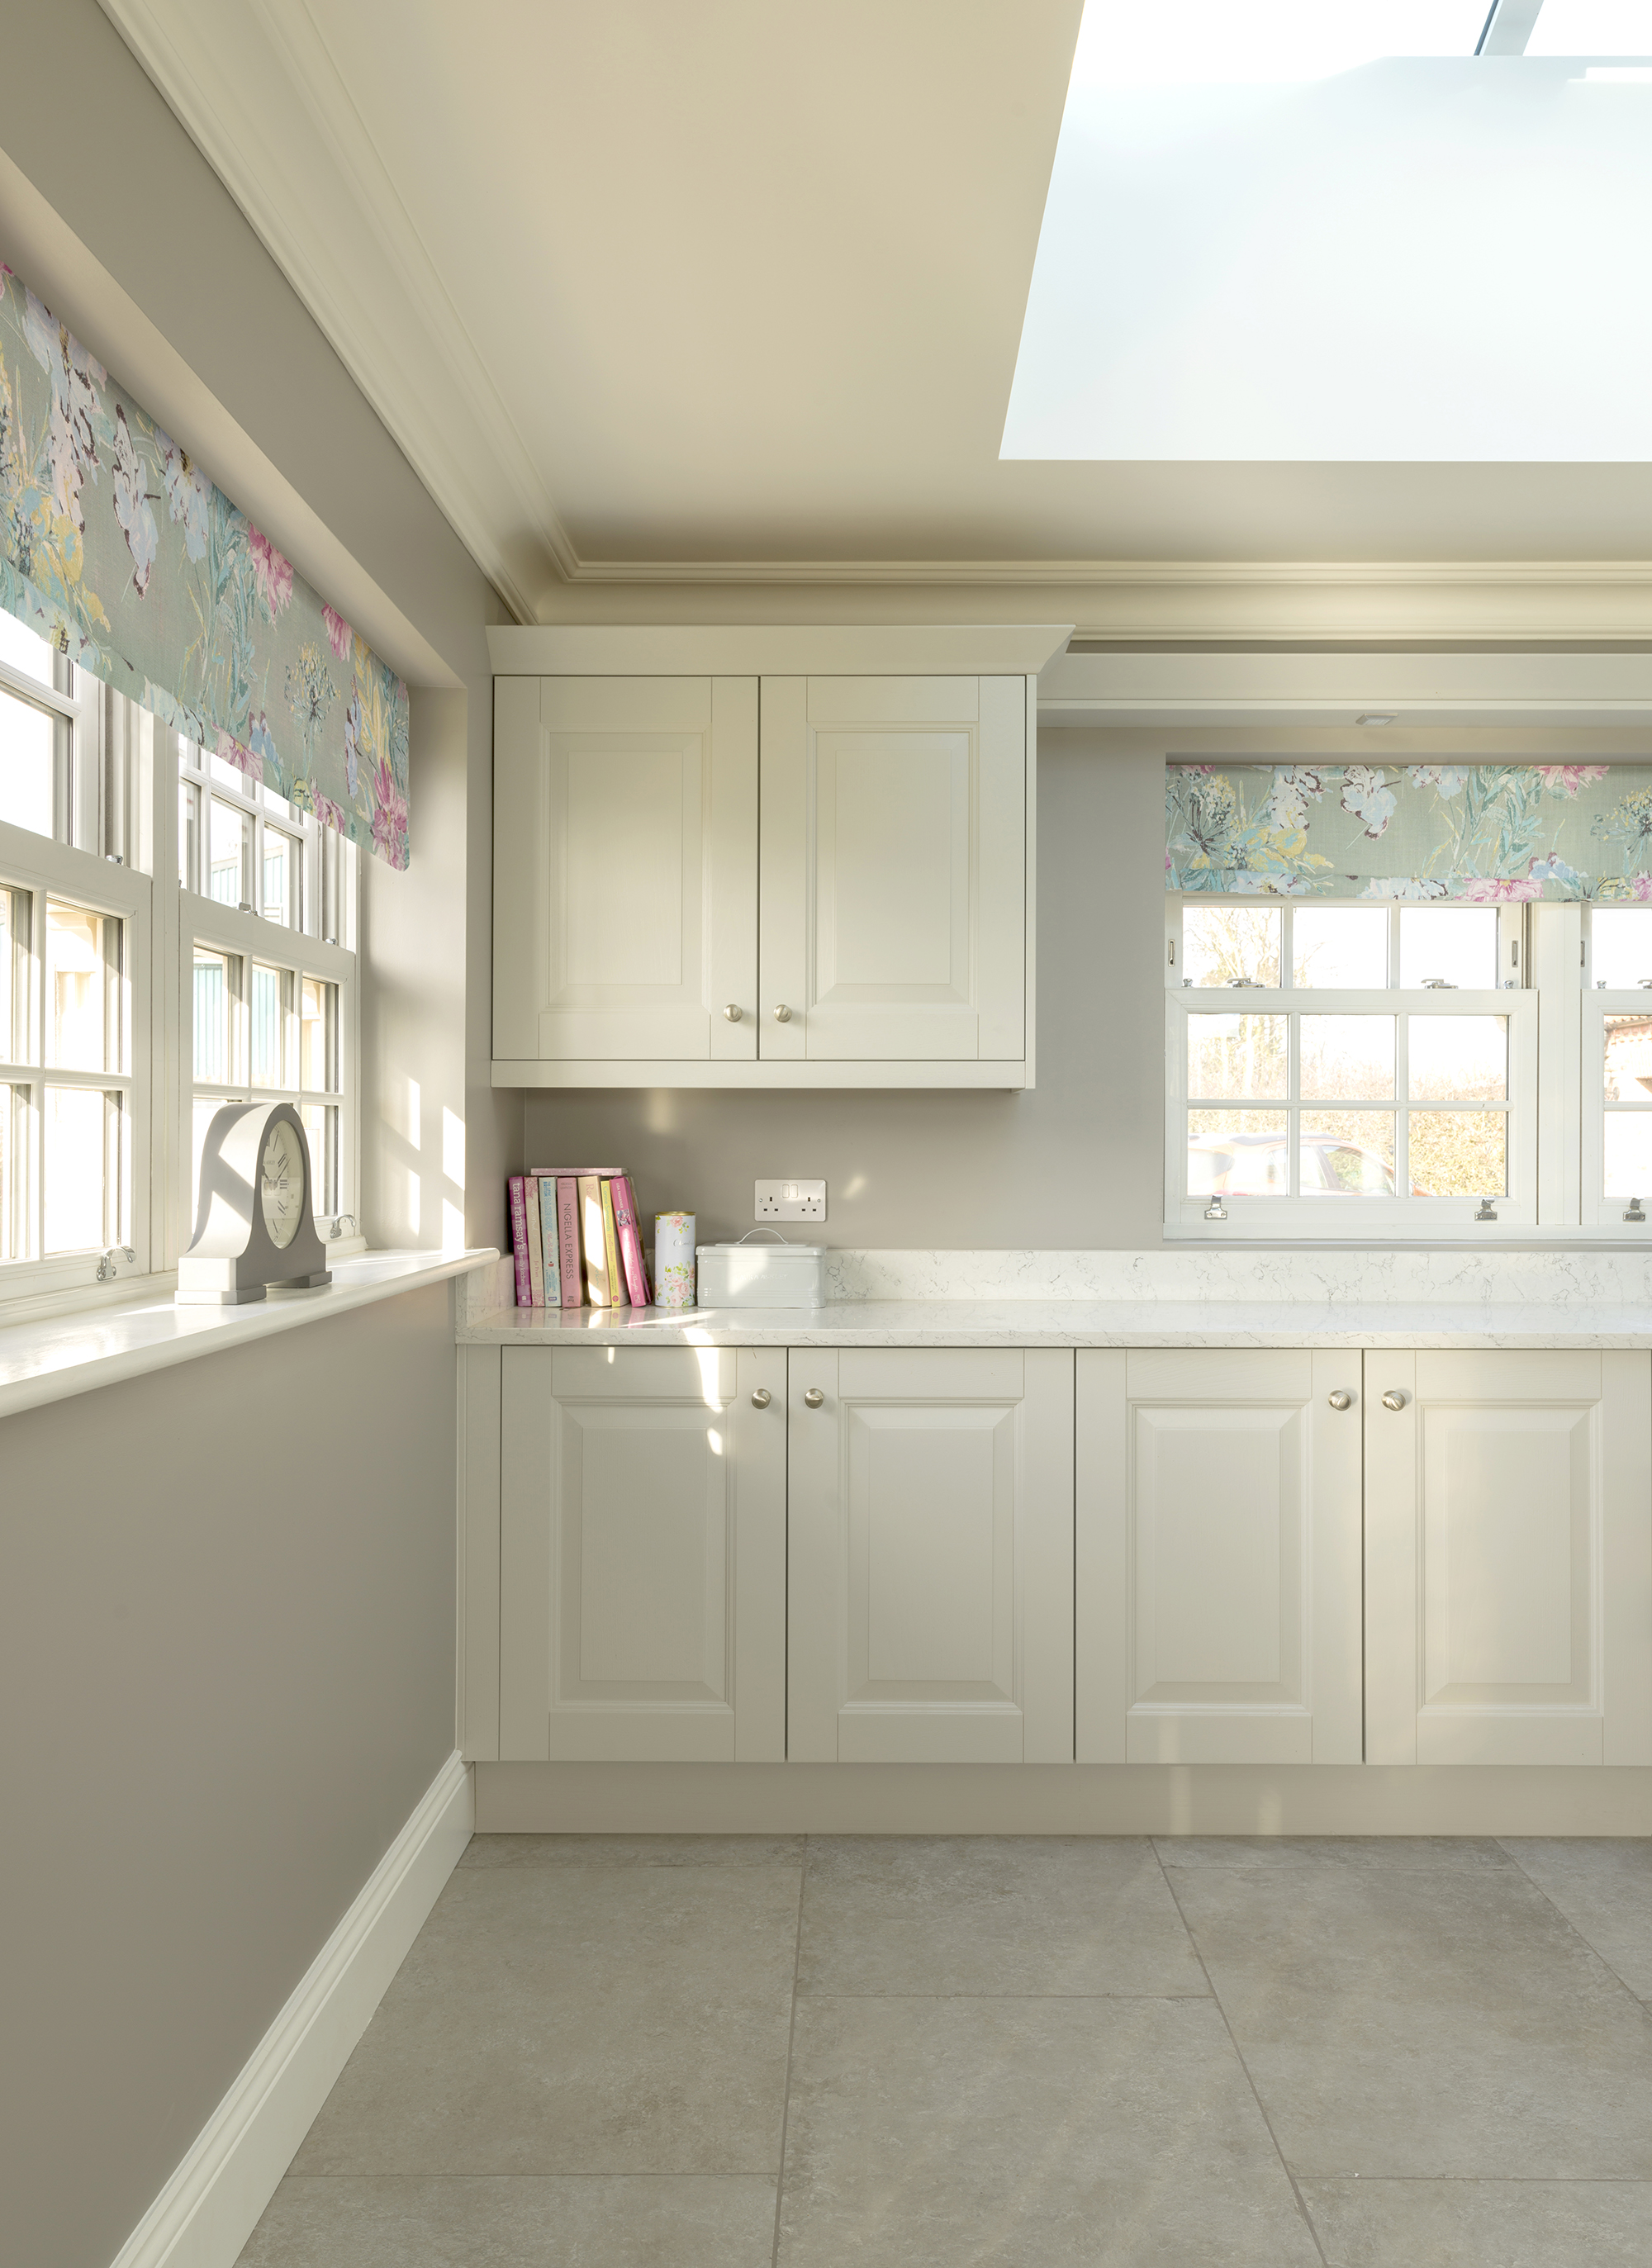 5 Ways to Spark Joy in the Kitchen | Laura Ashley Blog